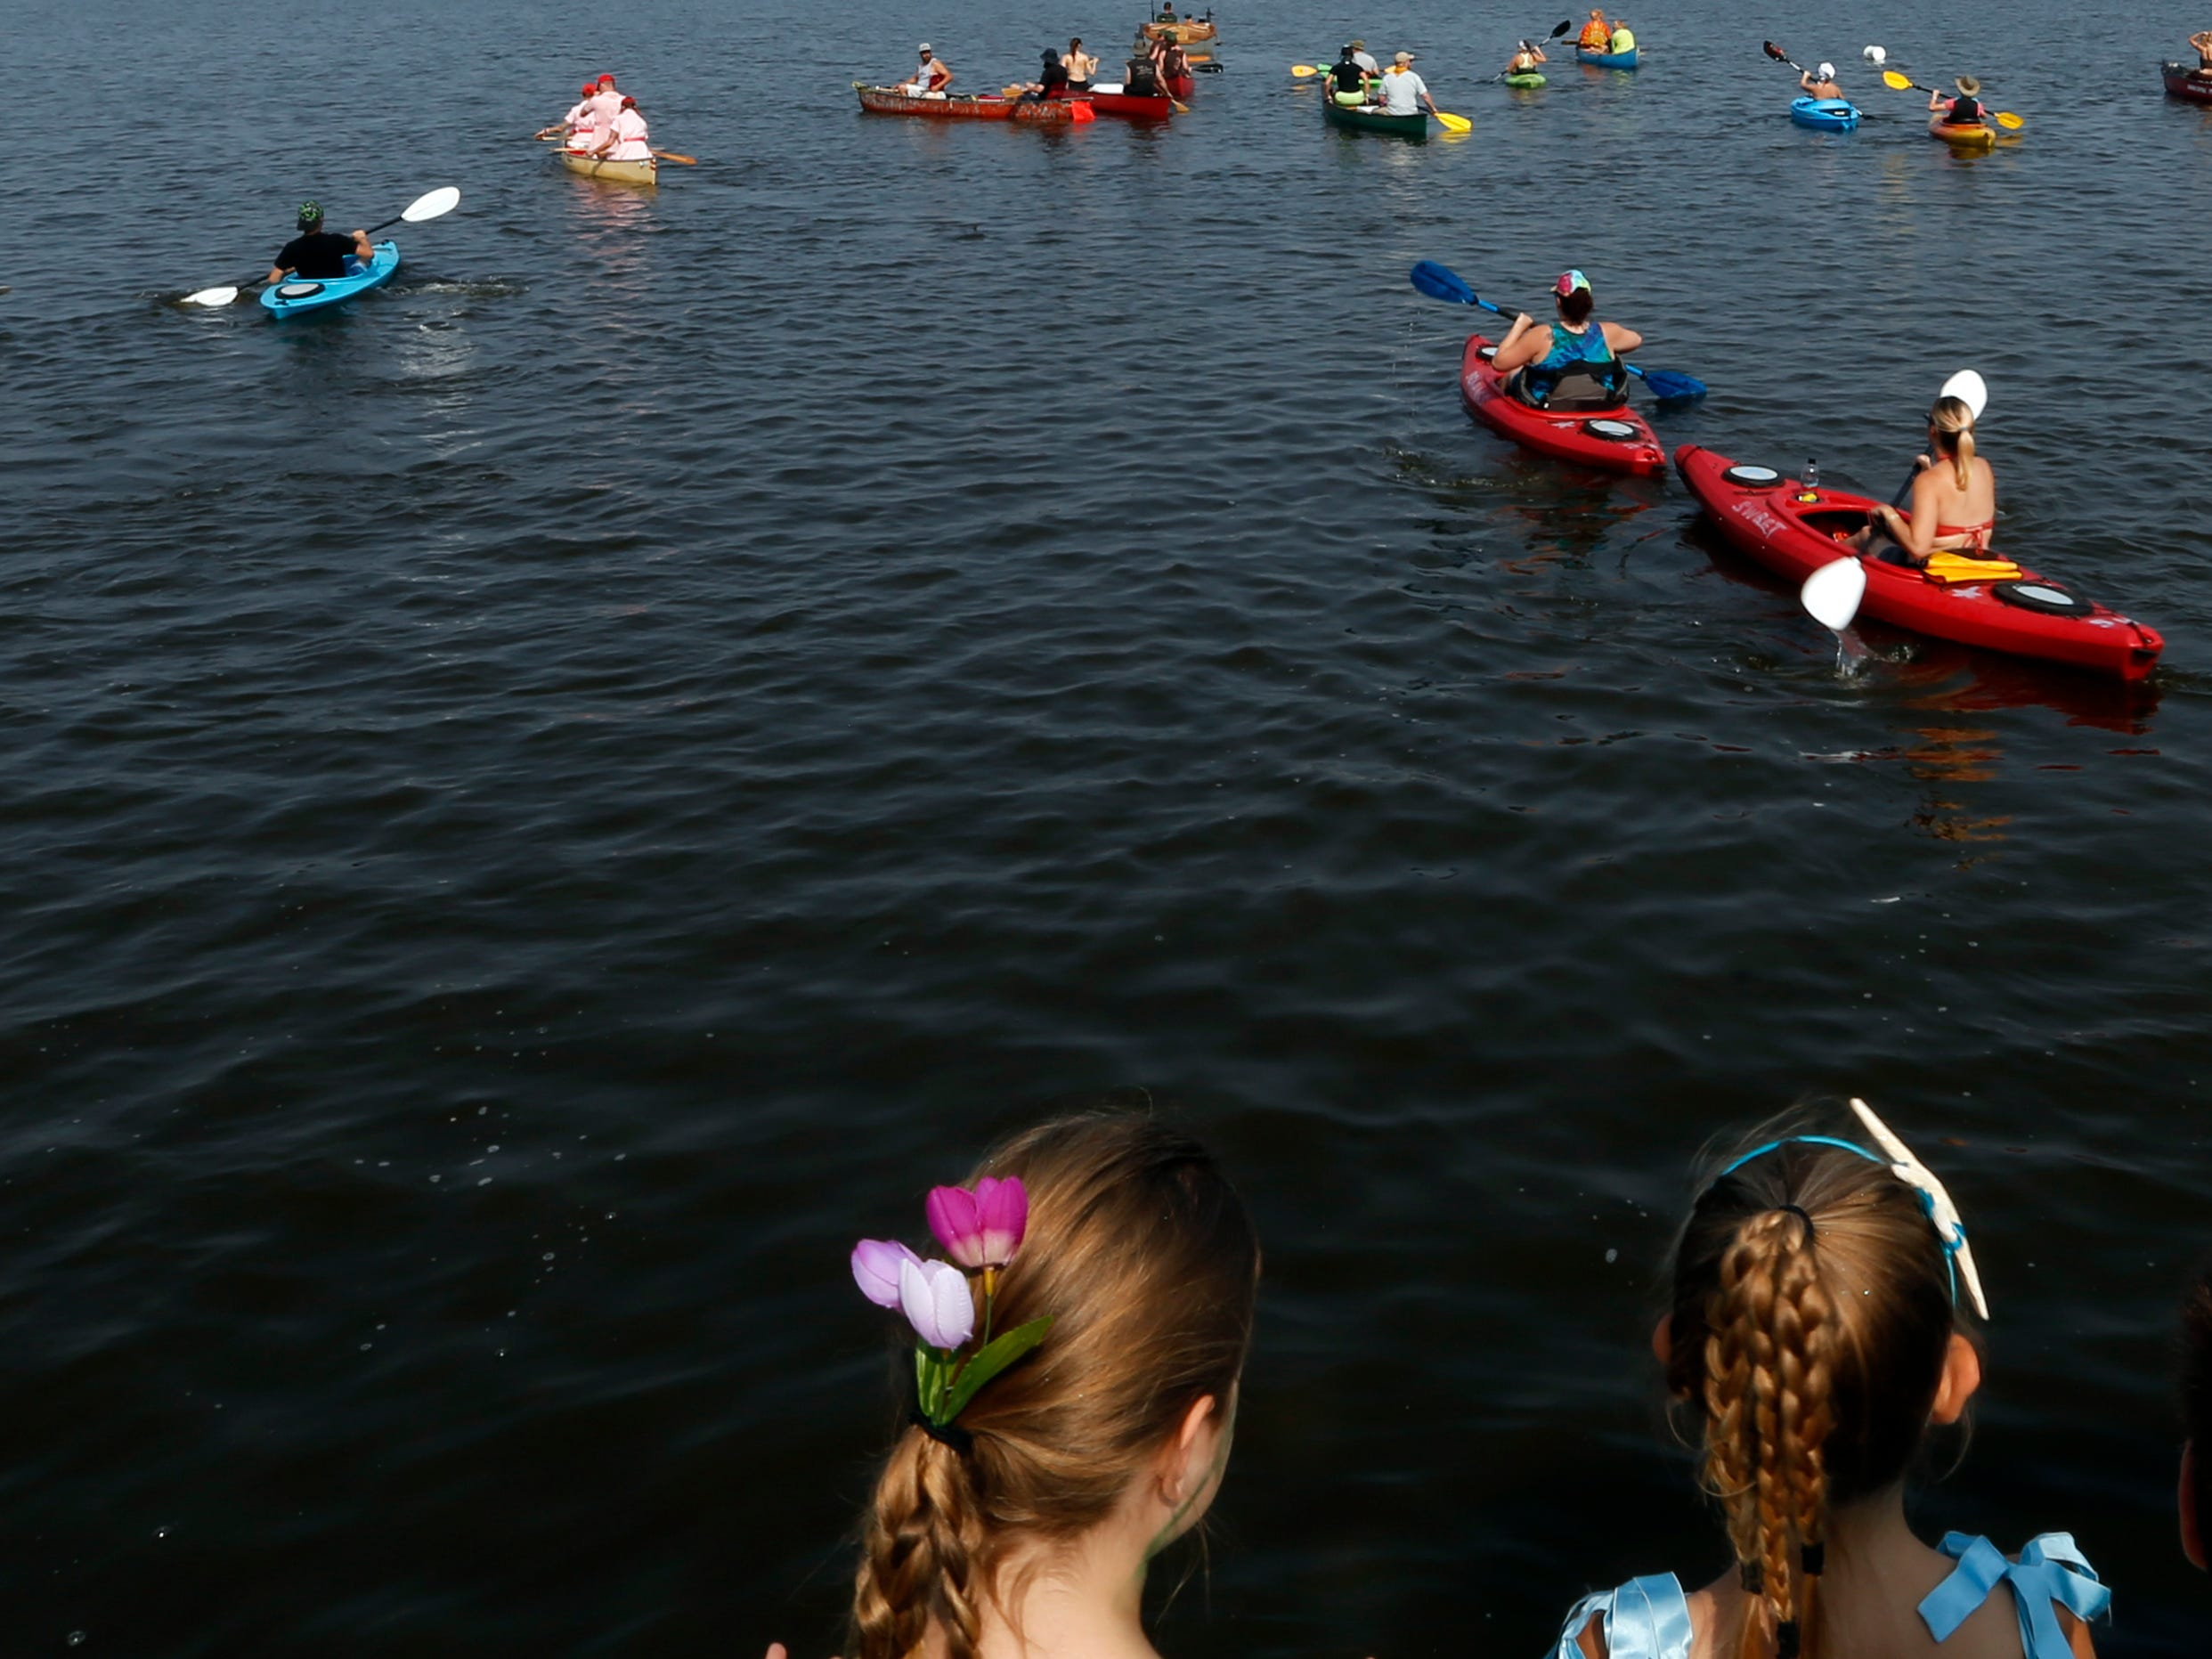 Children look on as questers take off for PaddleQuest Odyssey in Stevens Point, Wis., August 11, 2018.